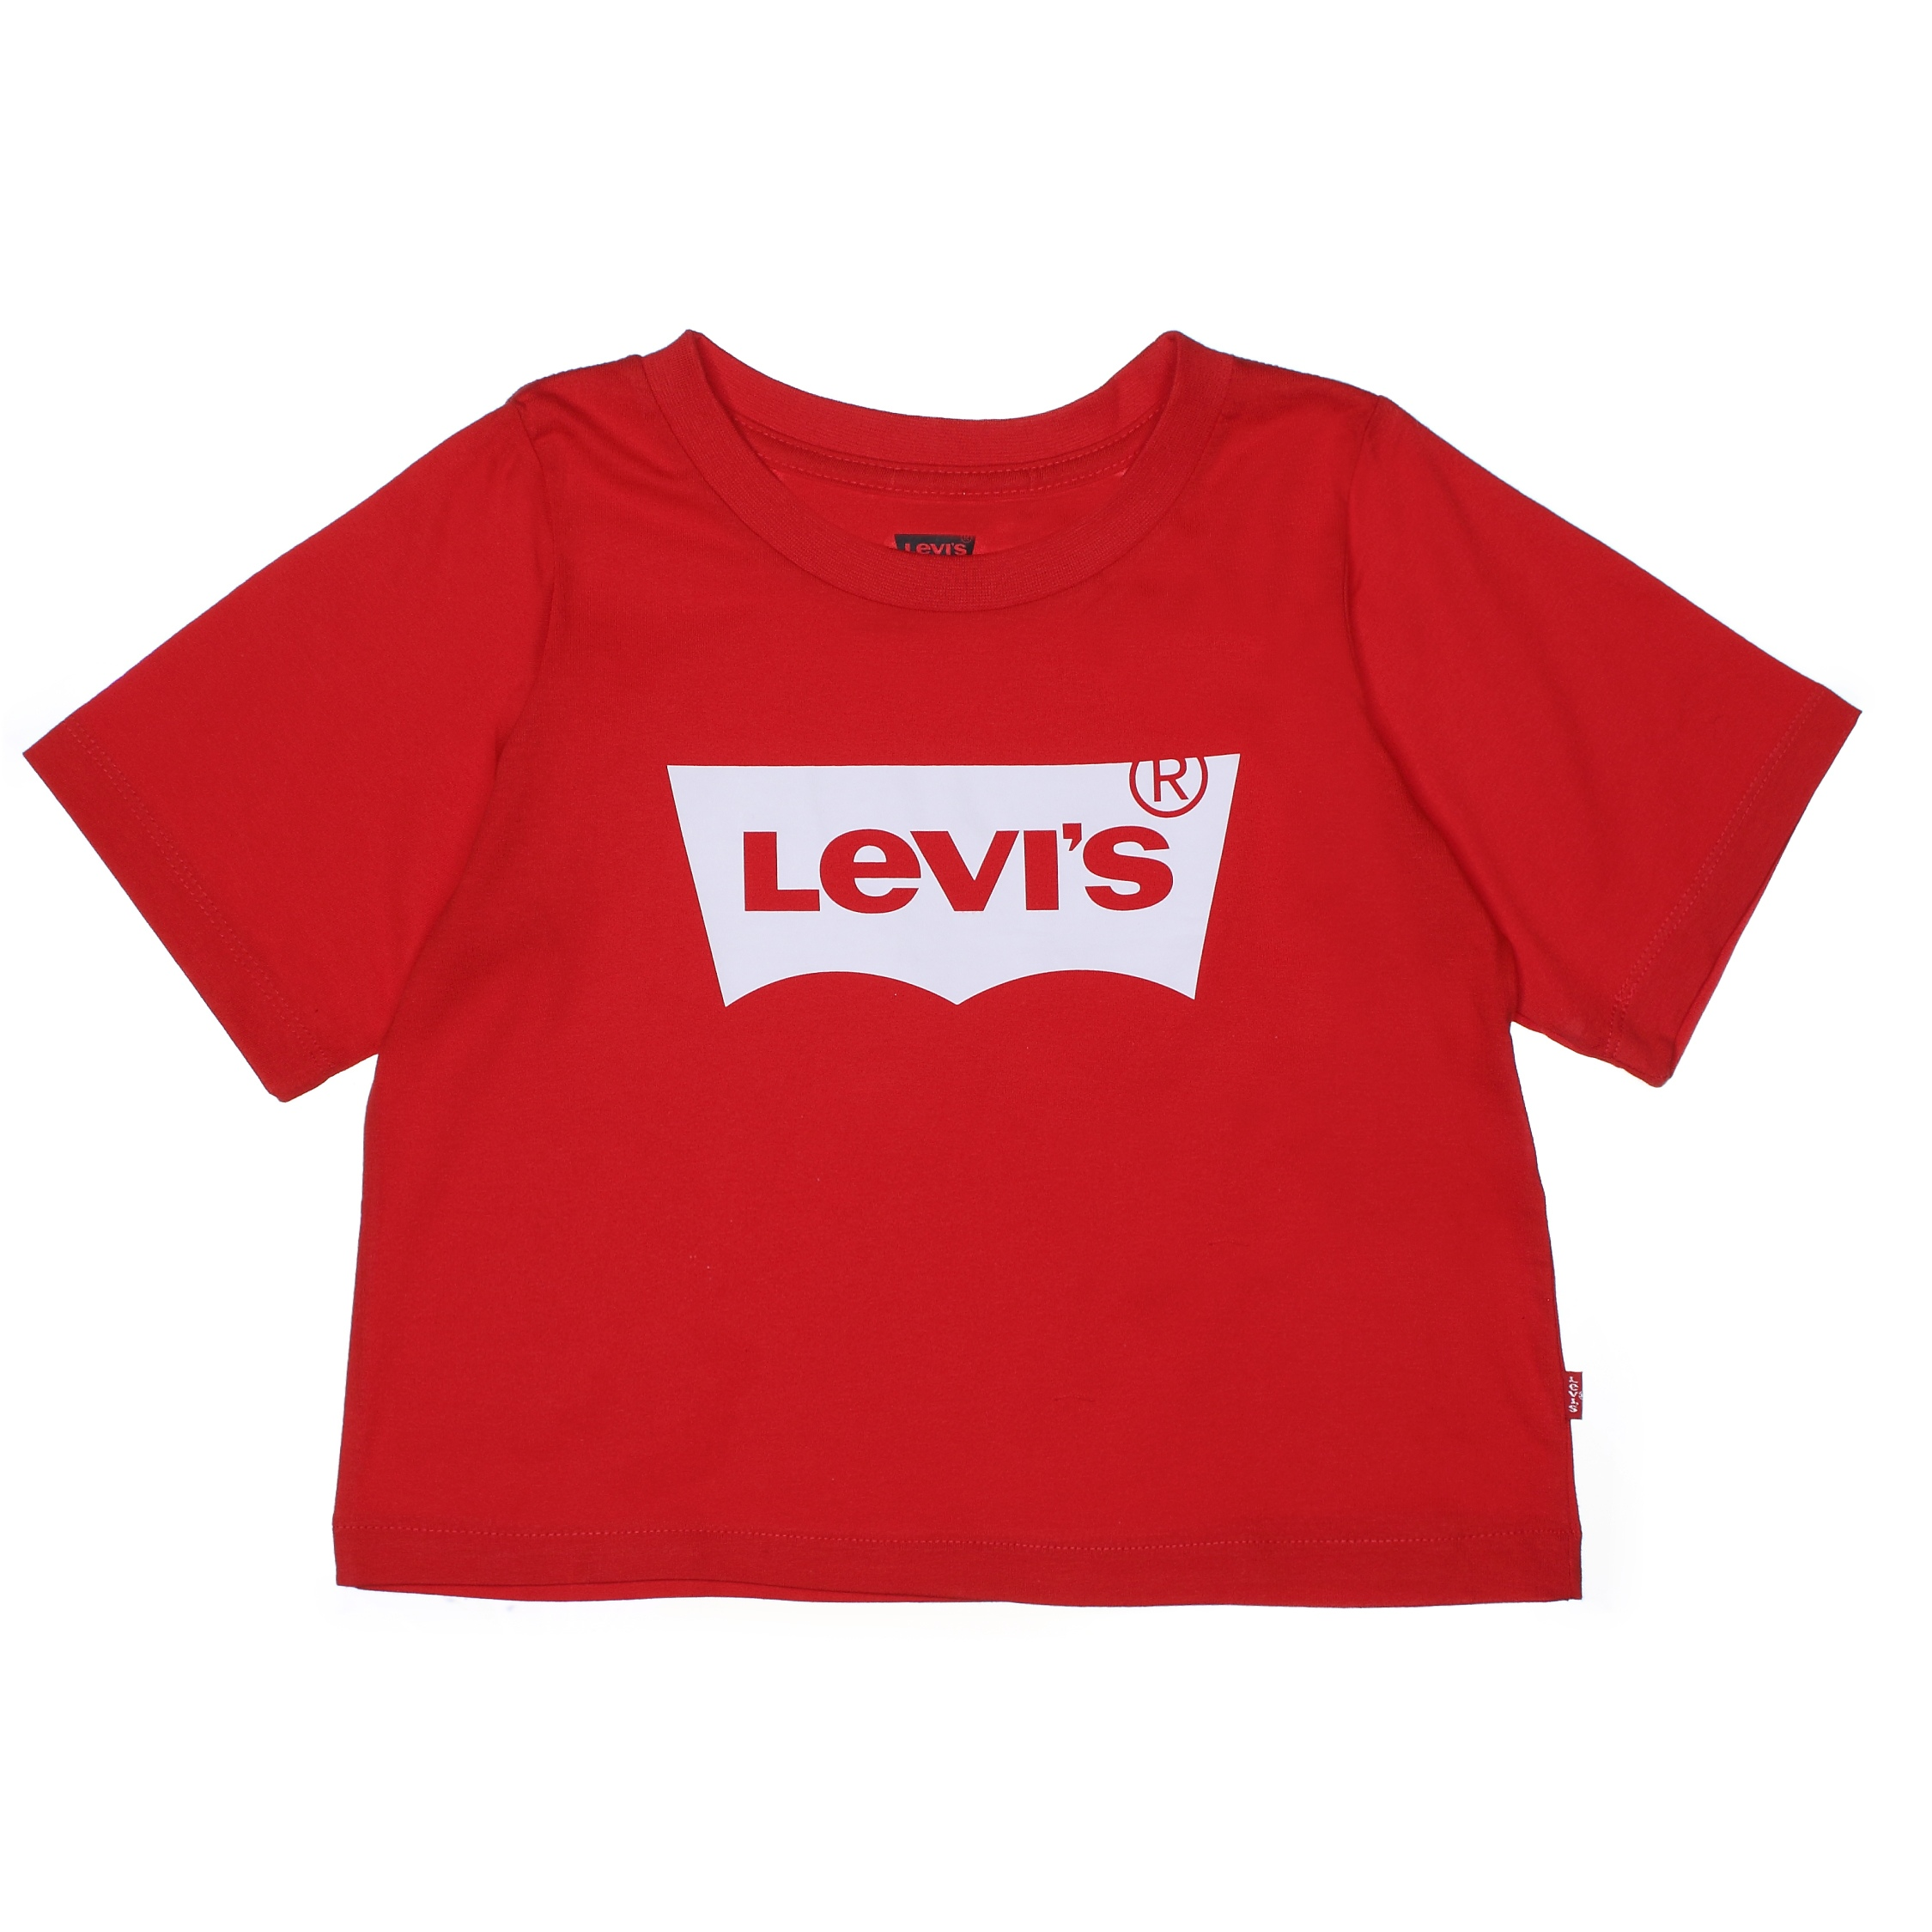 https://www.leadermode.com/183923/levi-s-kids-0220-r6w-super-red.jpg